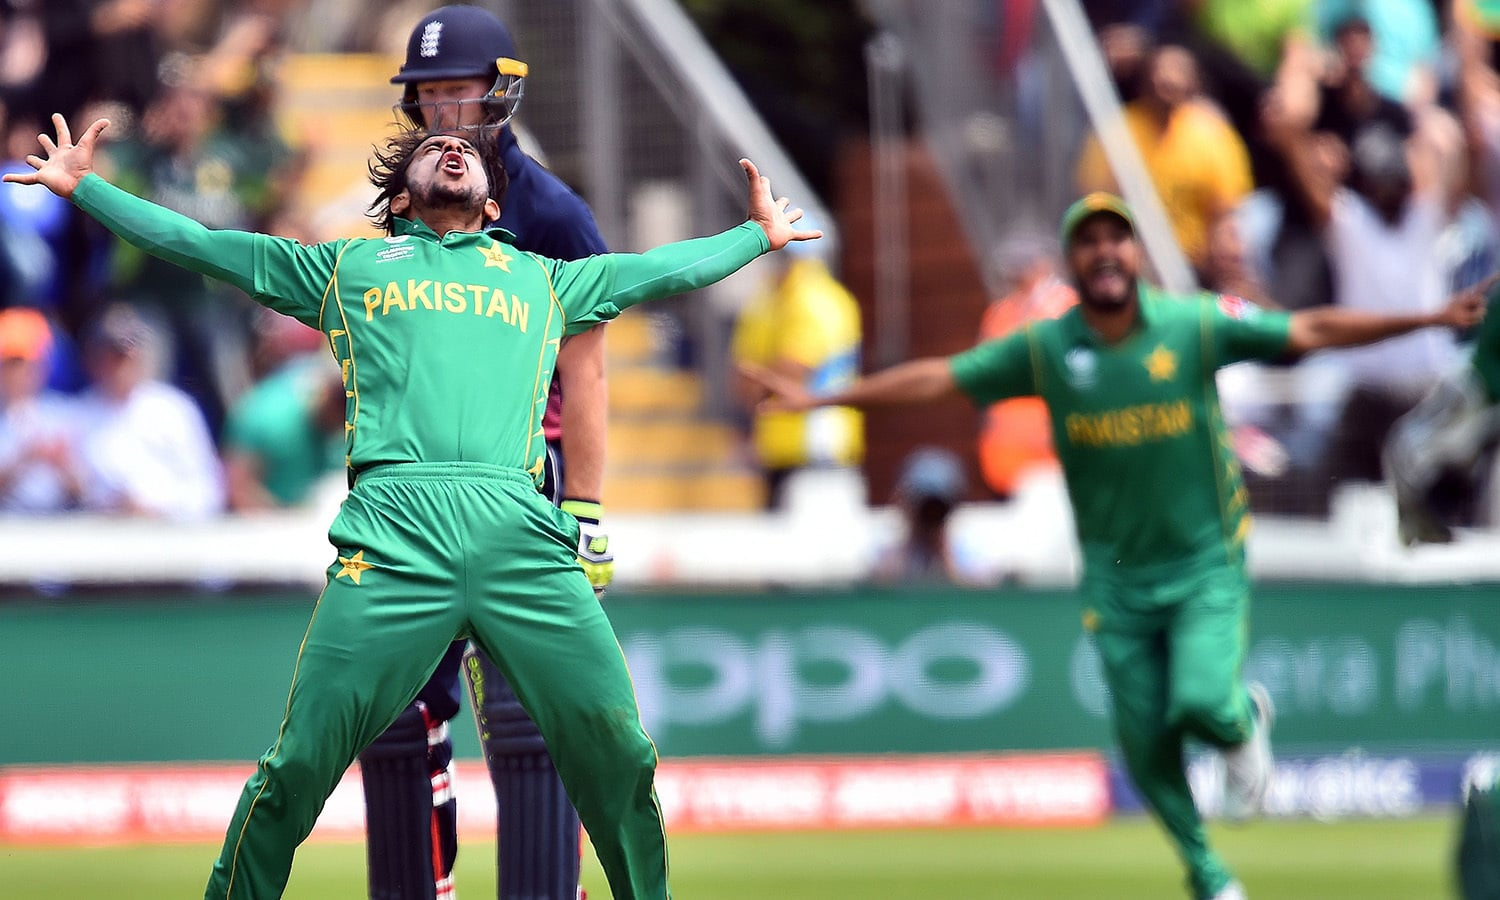 Pakistan defy all odds, cruise to Champions Trophy final after outshining England